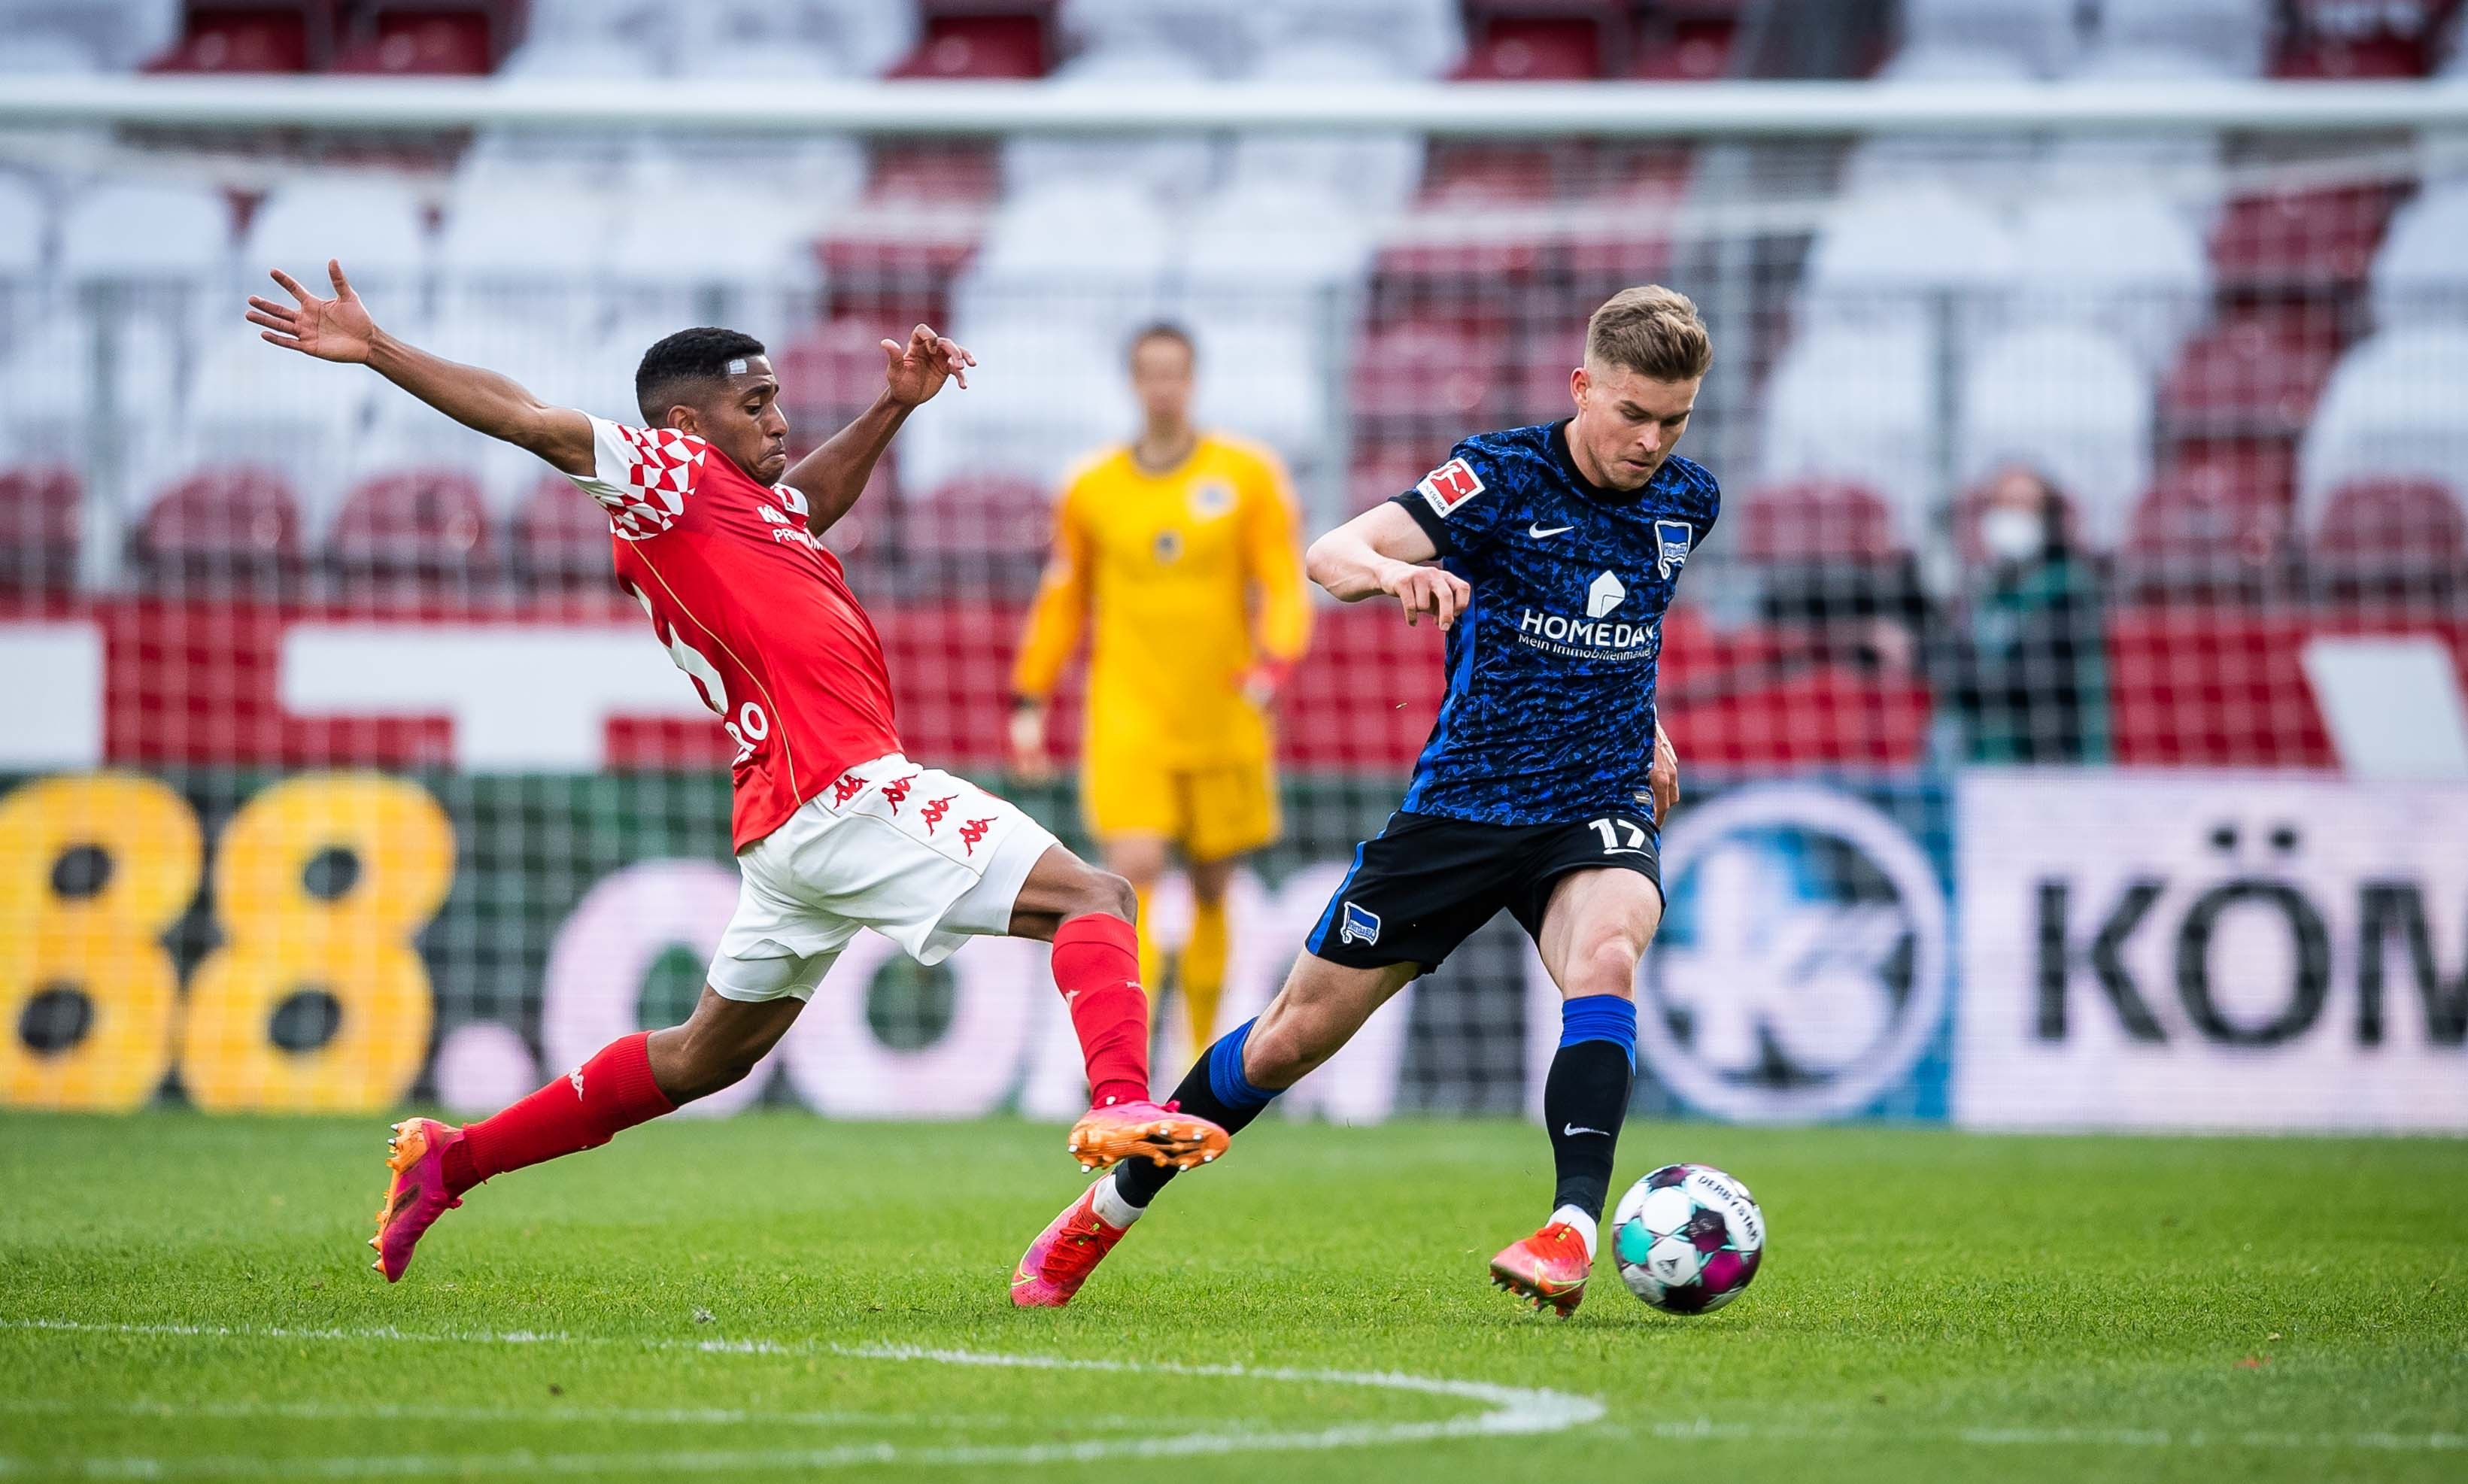 Maxi Mittelstädt challenges for the ball against Mainz 05.